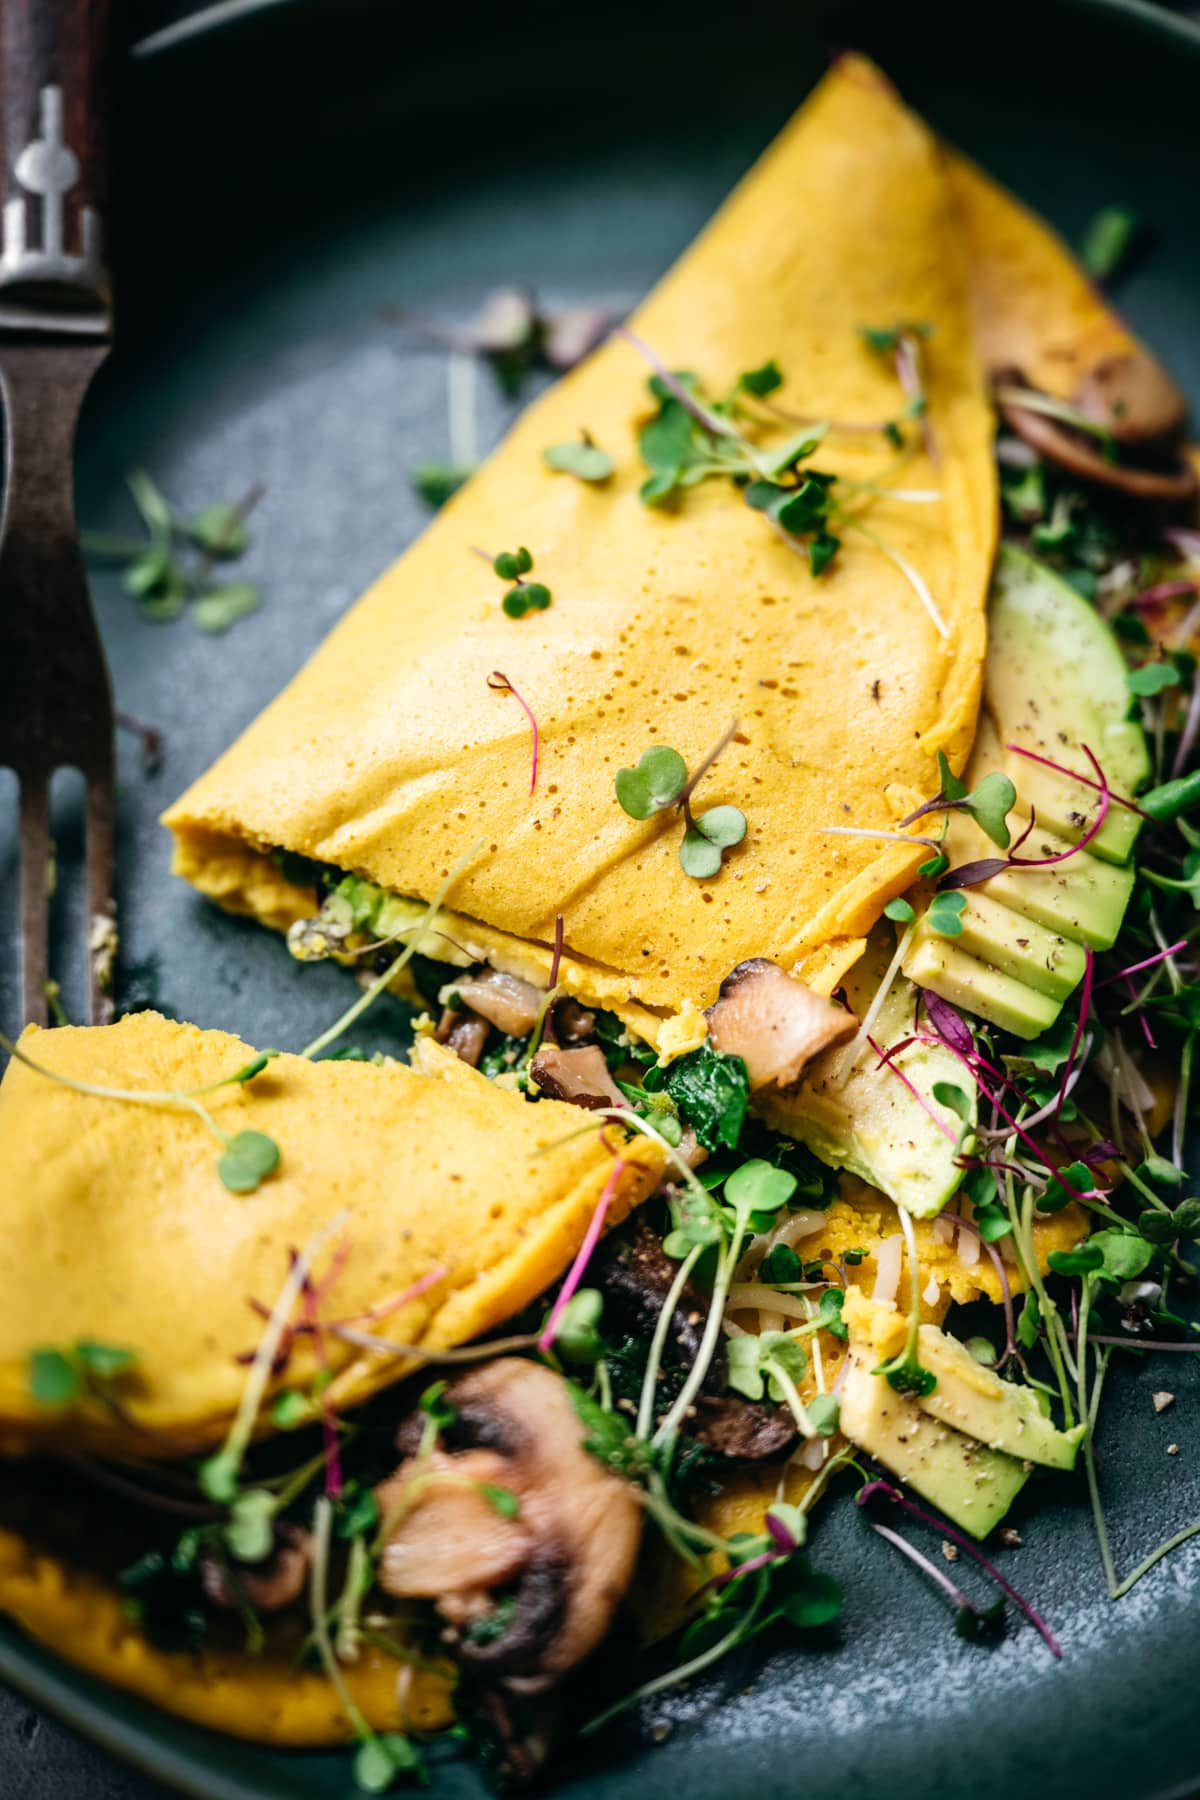 close up view of vegan omelette cut in half.